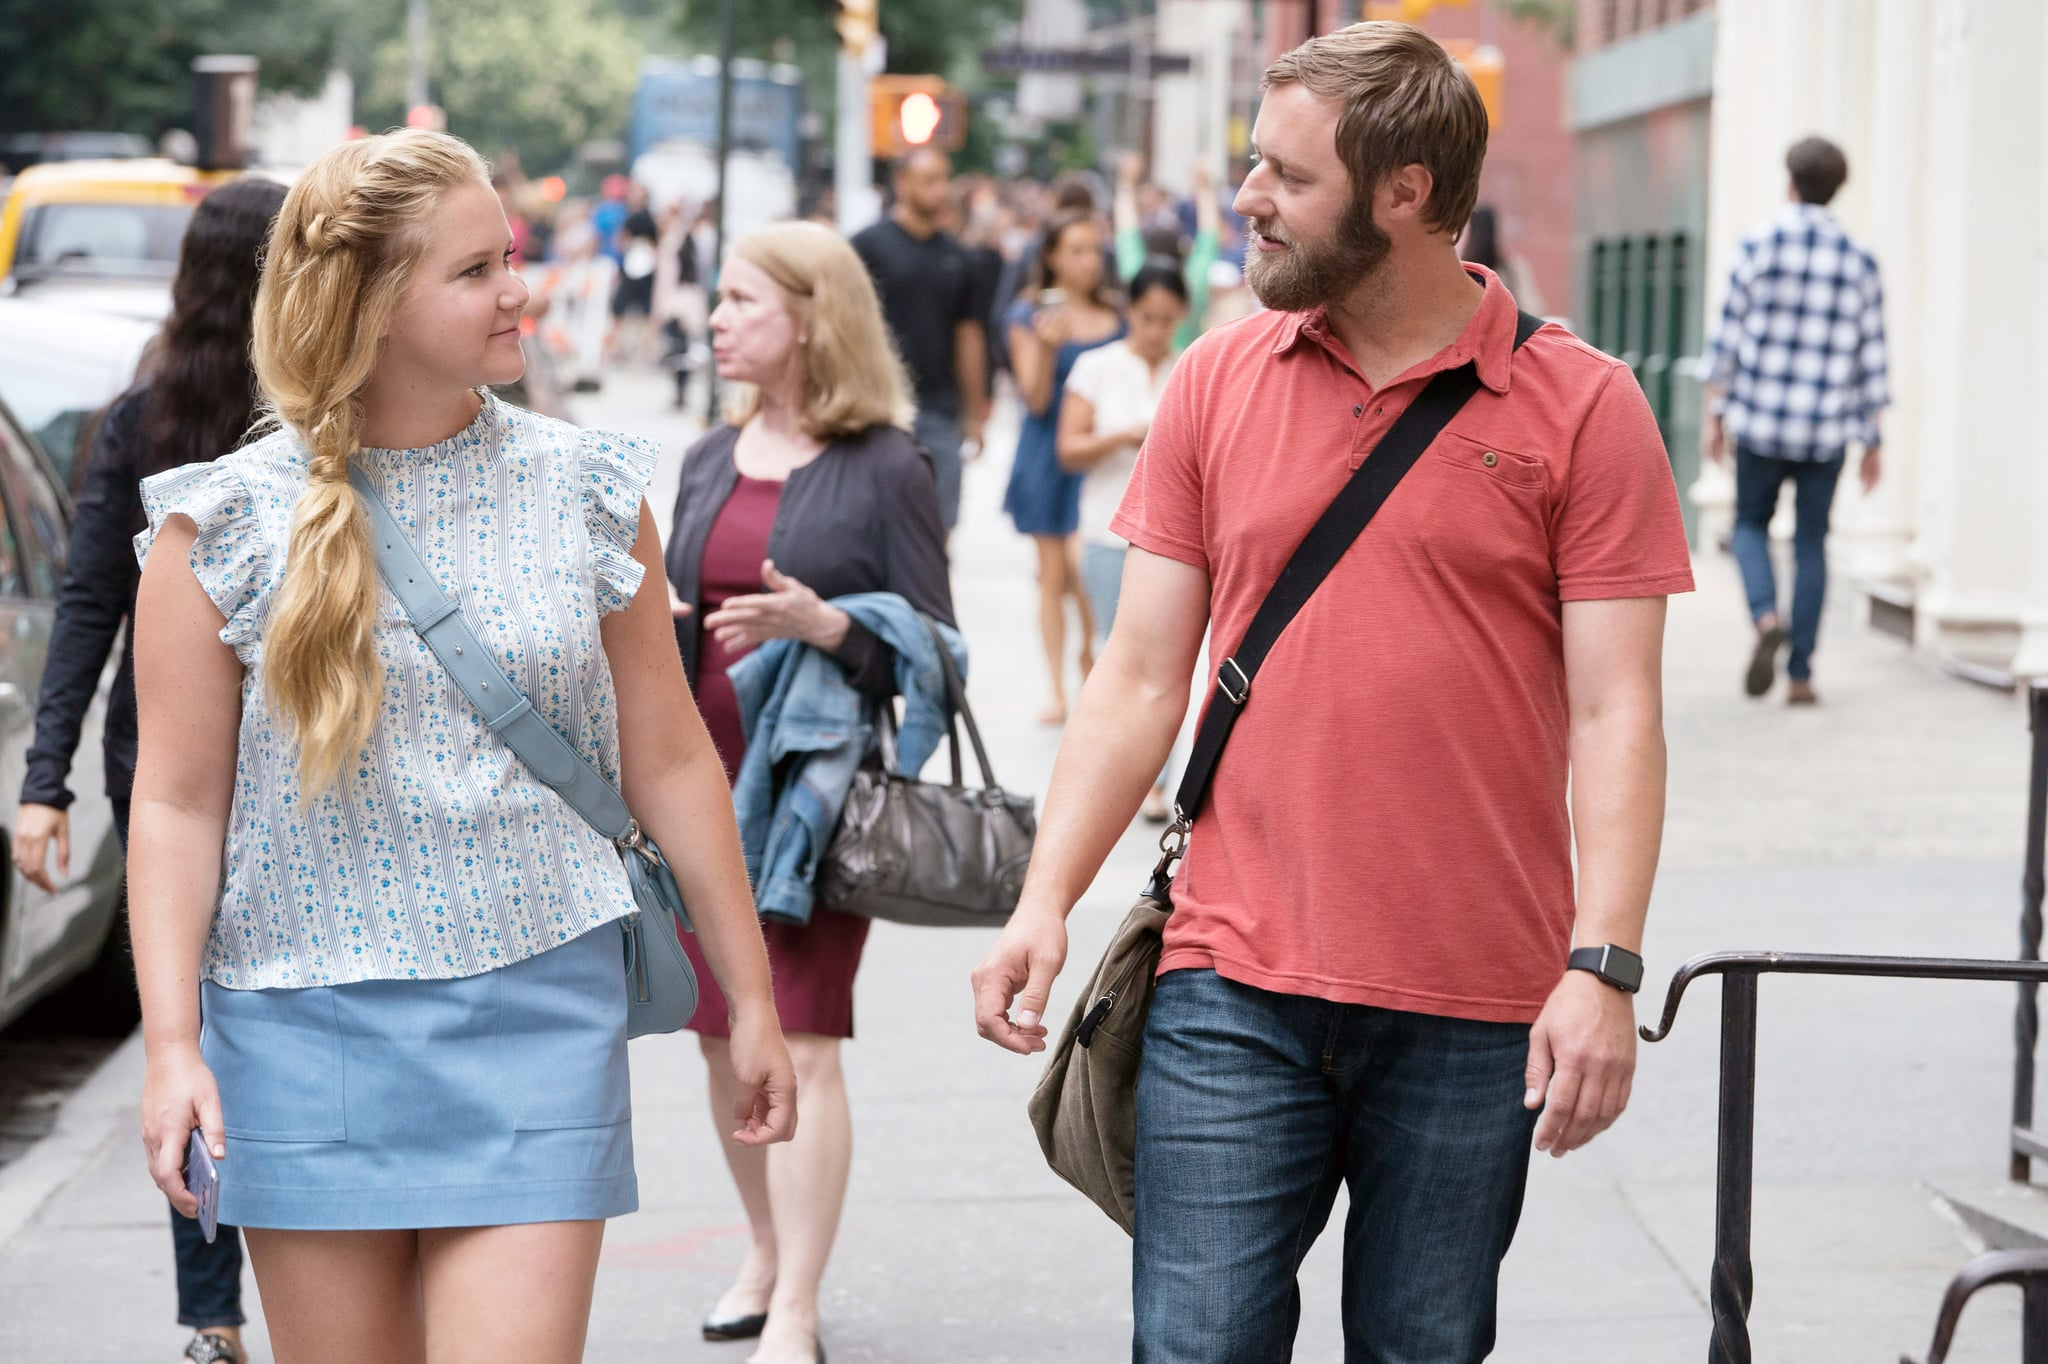 I FEEL PRETTY, from left: Amy Schumer, Rory Scovel, 2018. ph: Mark Schafer/  STX Entertainment /Courtesy Everett Colletion